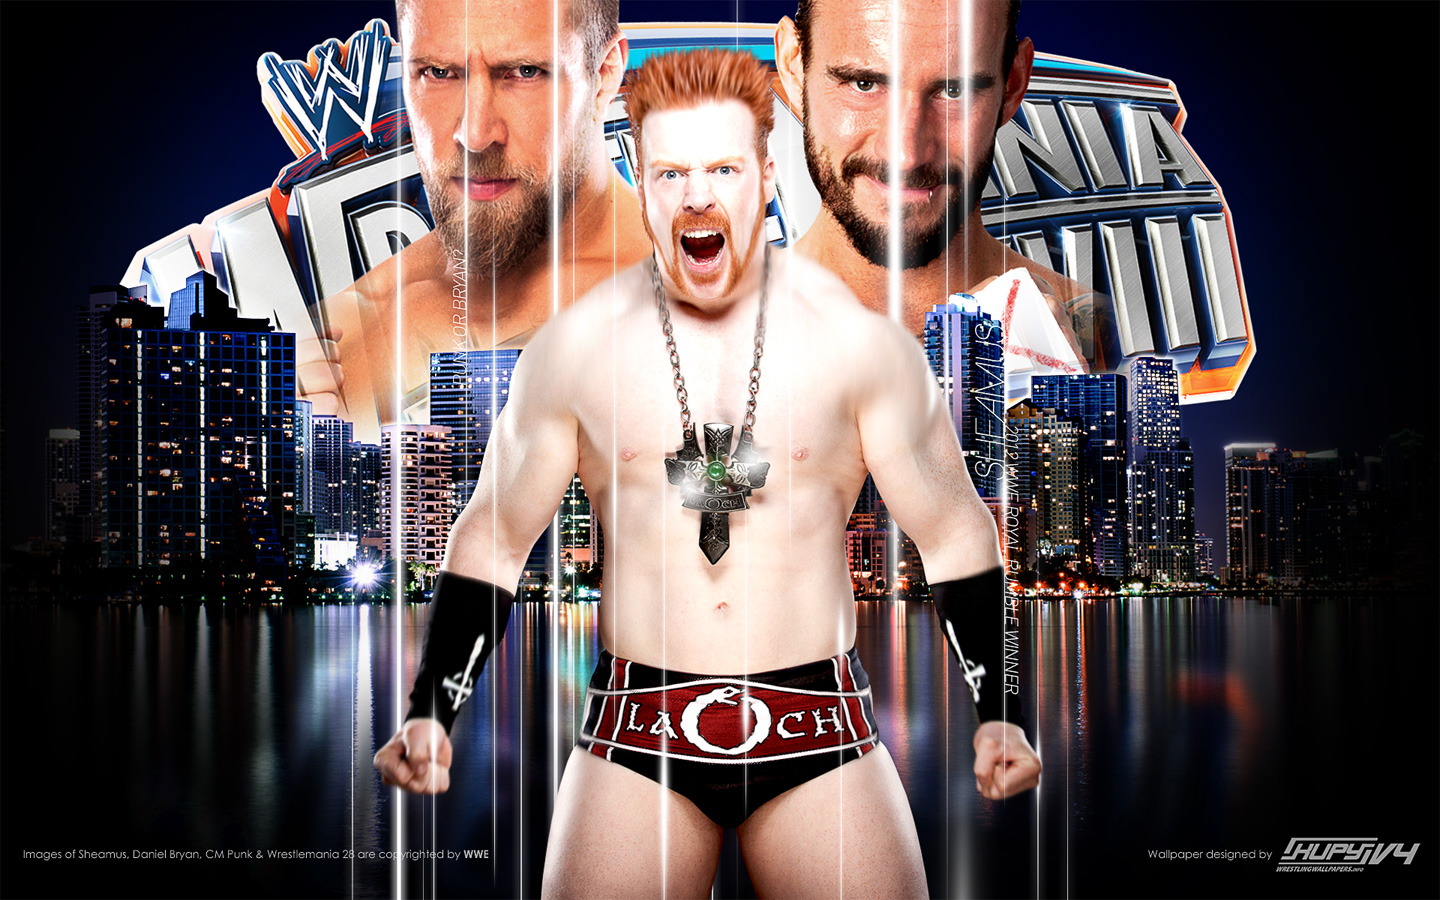 http://www.kupywrestlingwallpapers.info/wallpapers/sheamus-royal-rumble-winner-wallpaper-1440x900.jpg